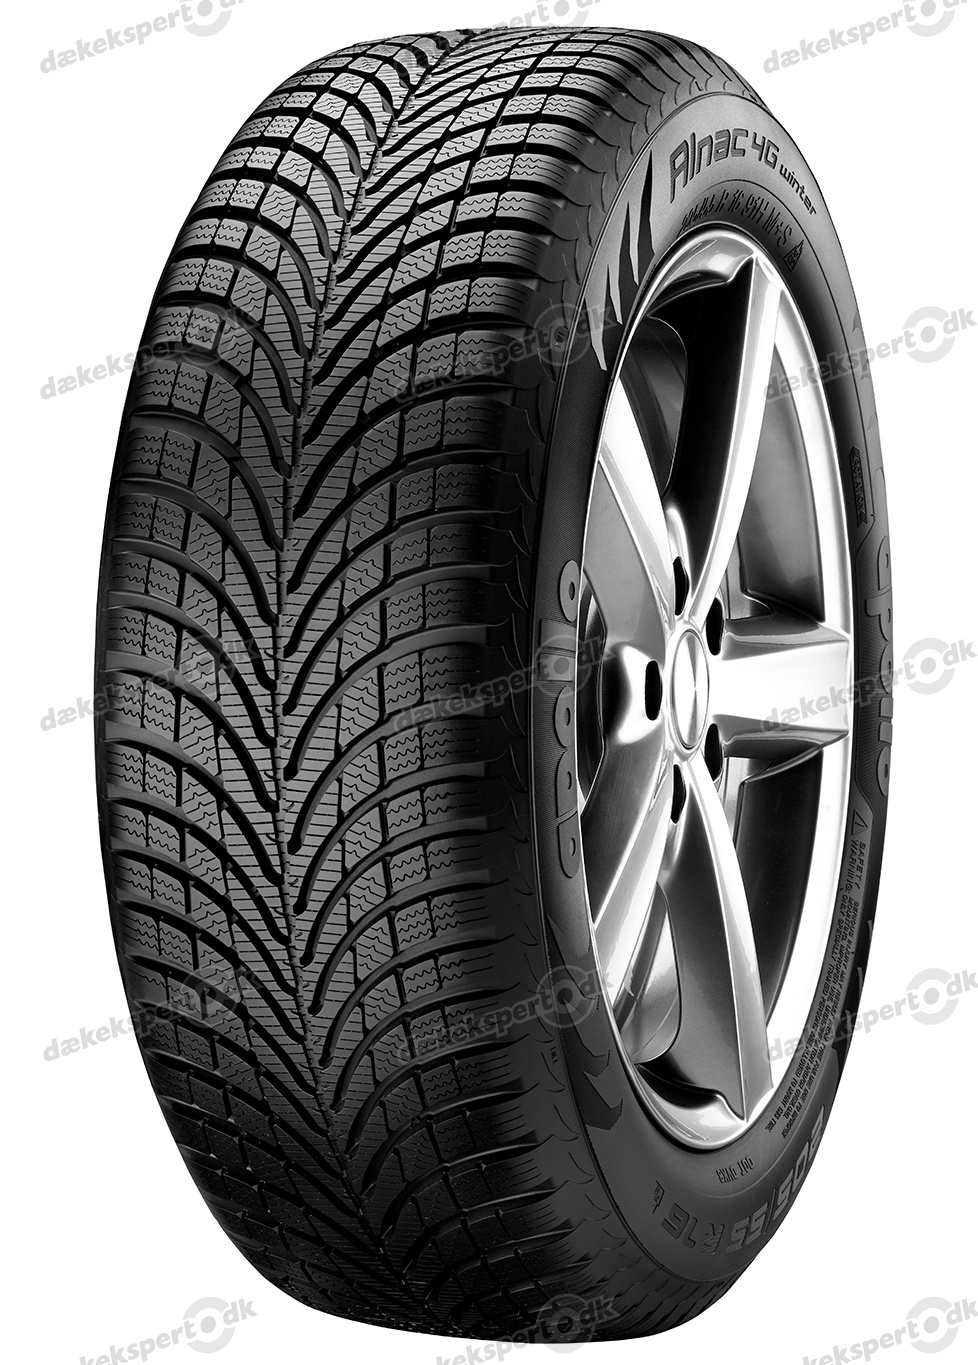 apollo tyres 1 Apollo tyres ltd is the leading tyre manufacturing company in india they are engaged in manufacturing automobile tyres and tubes they are having their manufacturing facilities at trichur in kerala and vadodara in gujarat.